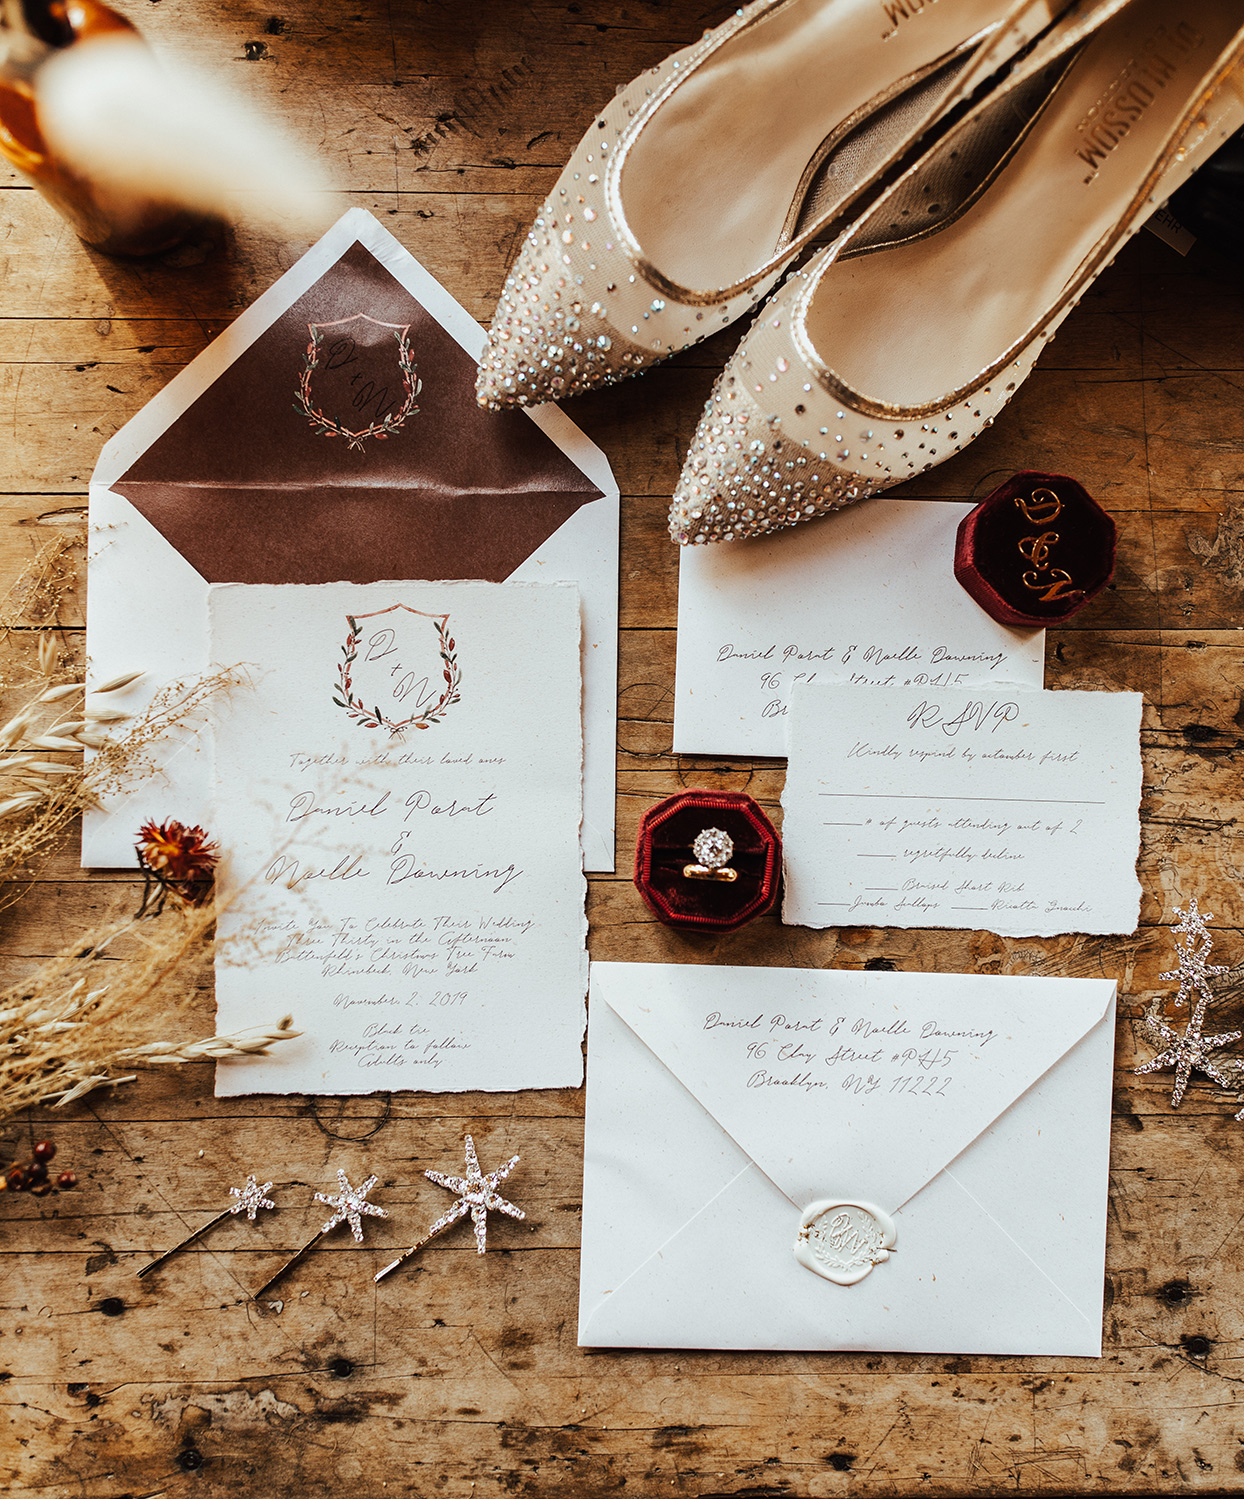 Vintage-Inspired Invitations